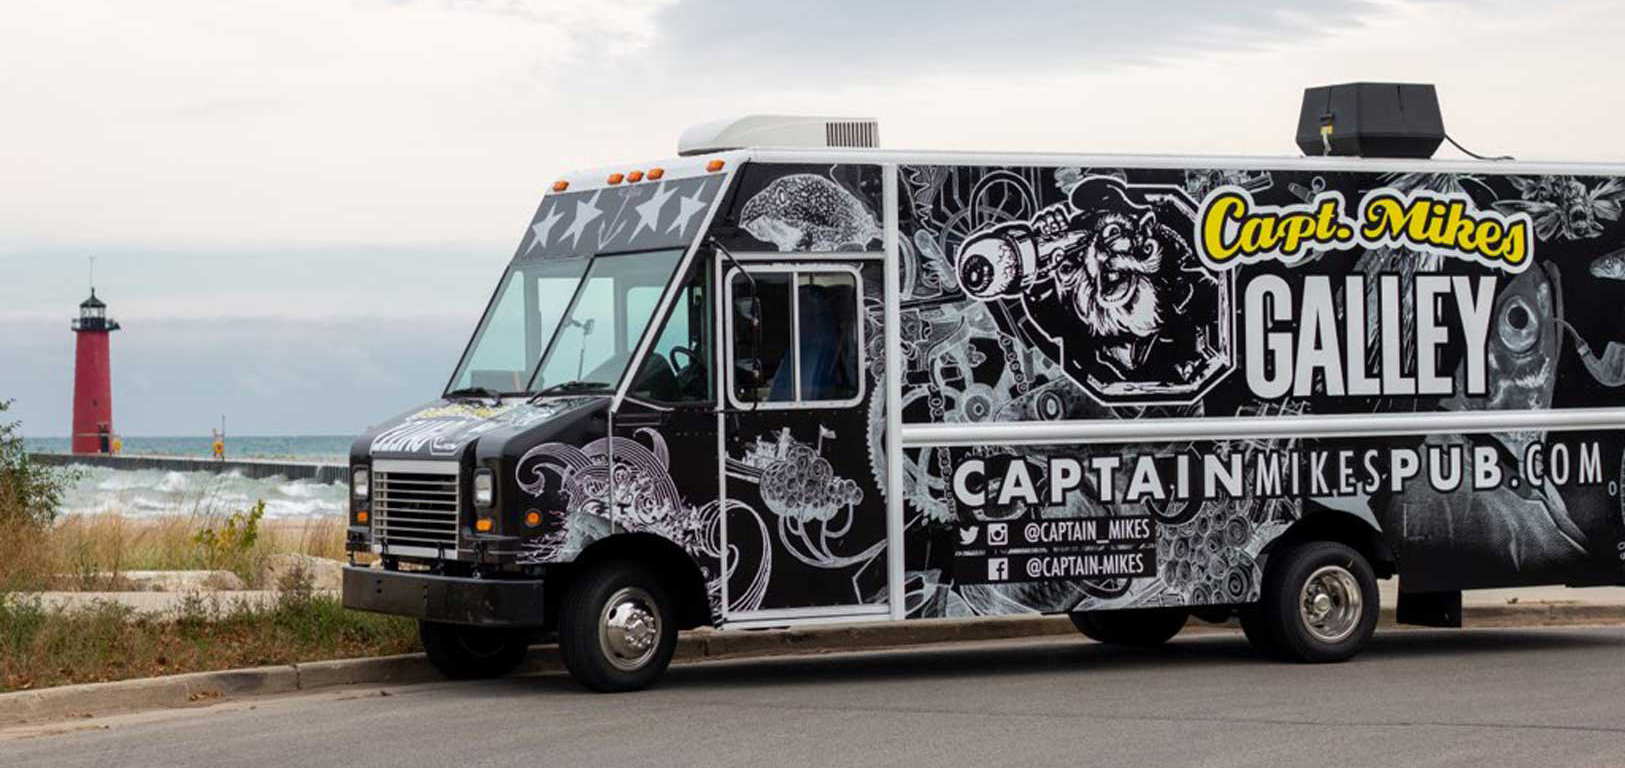 Captain Mike's Food Truck